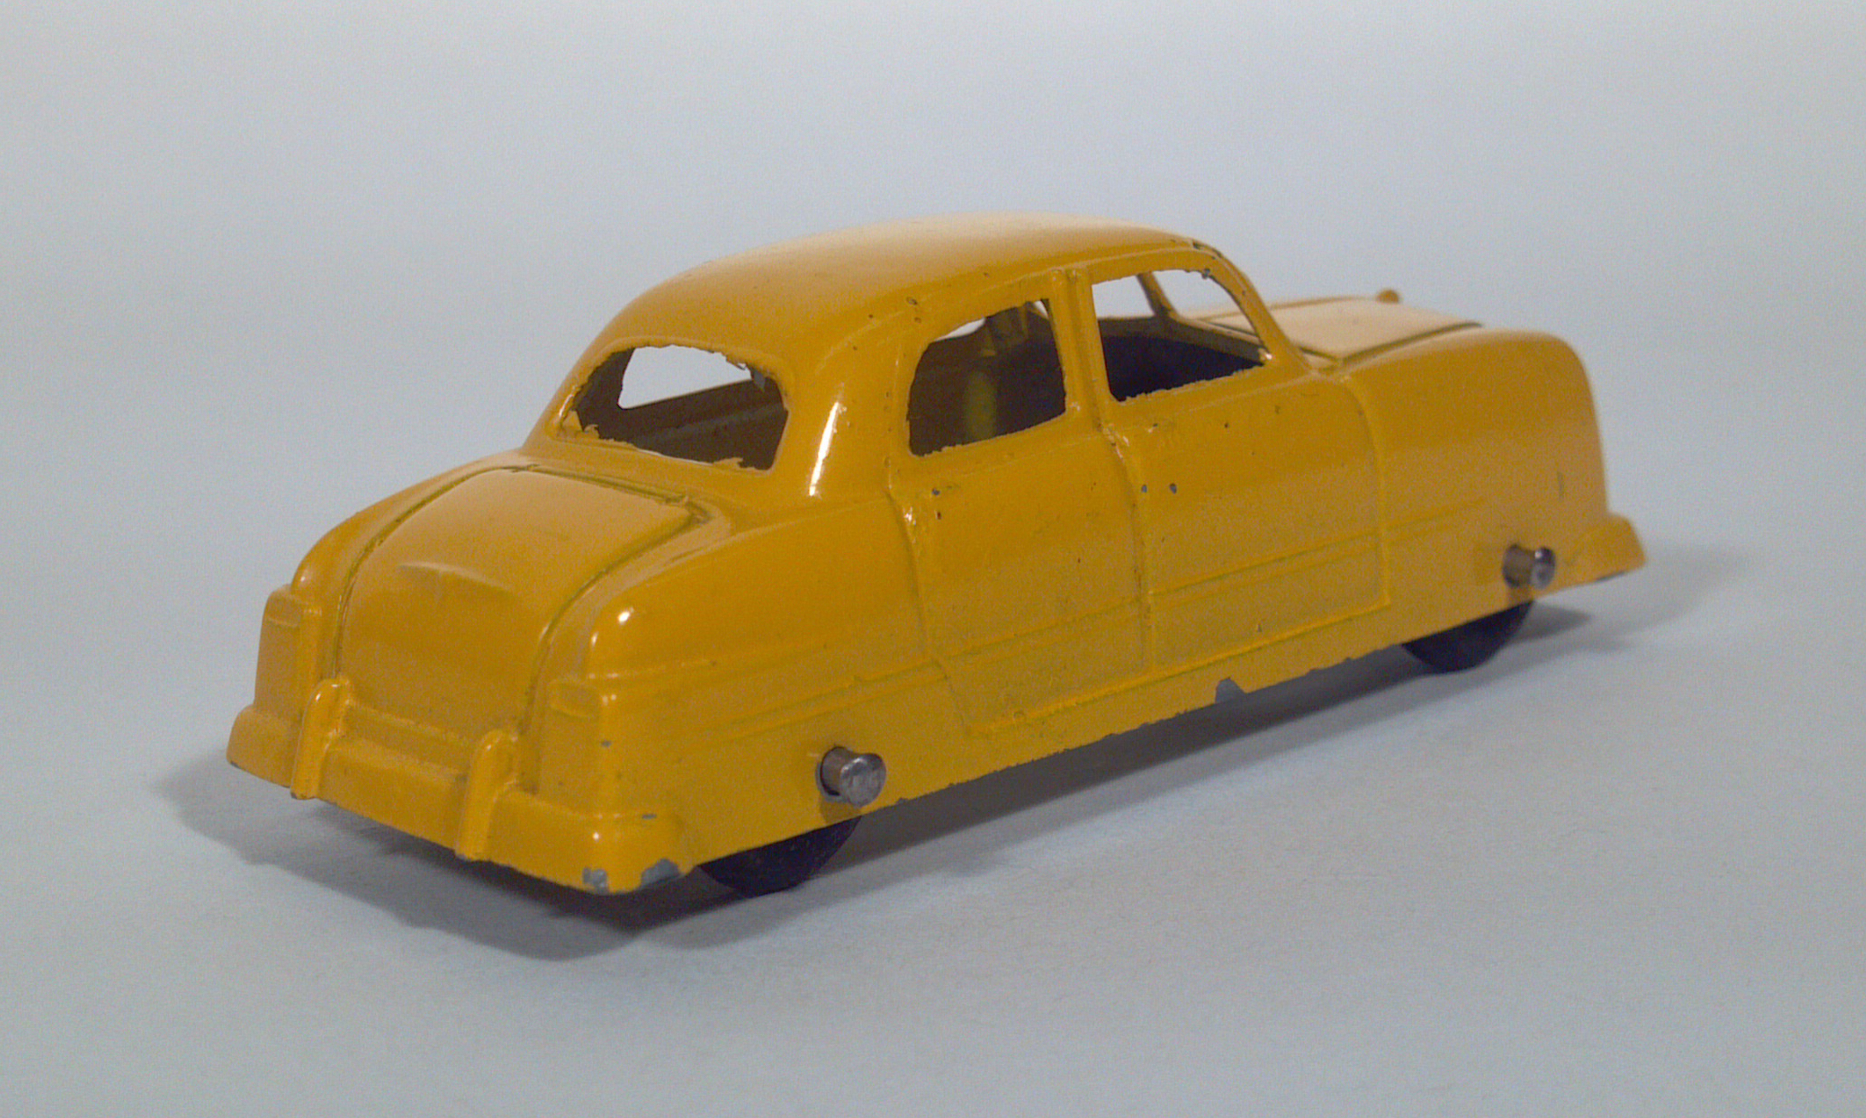 Post War Tootsietoy Diecast Toy Vehicles Scale Models Cars Trucks Ebay Ford Tractor 3600 Wiring Harness Notes This Model Is Available In Our Store 49 Sedan